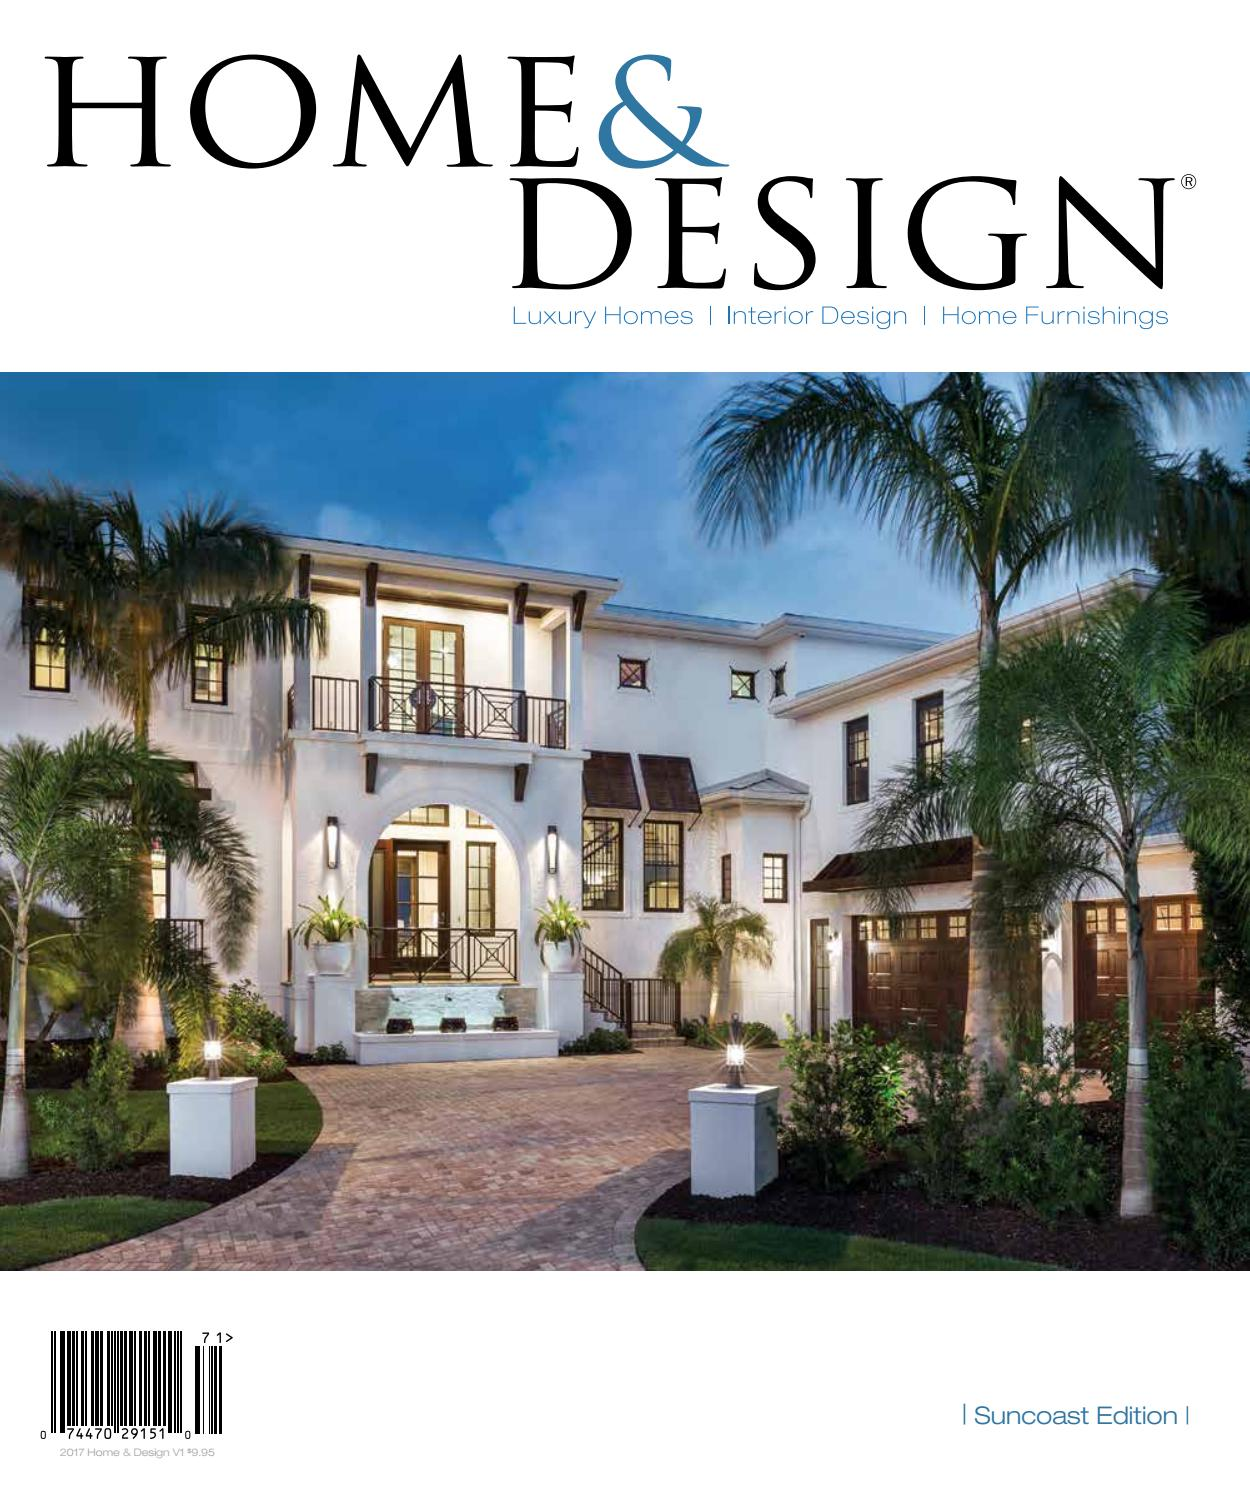 Home design magazine 2017 suncoast florida edition by for Luxury home design magazine